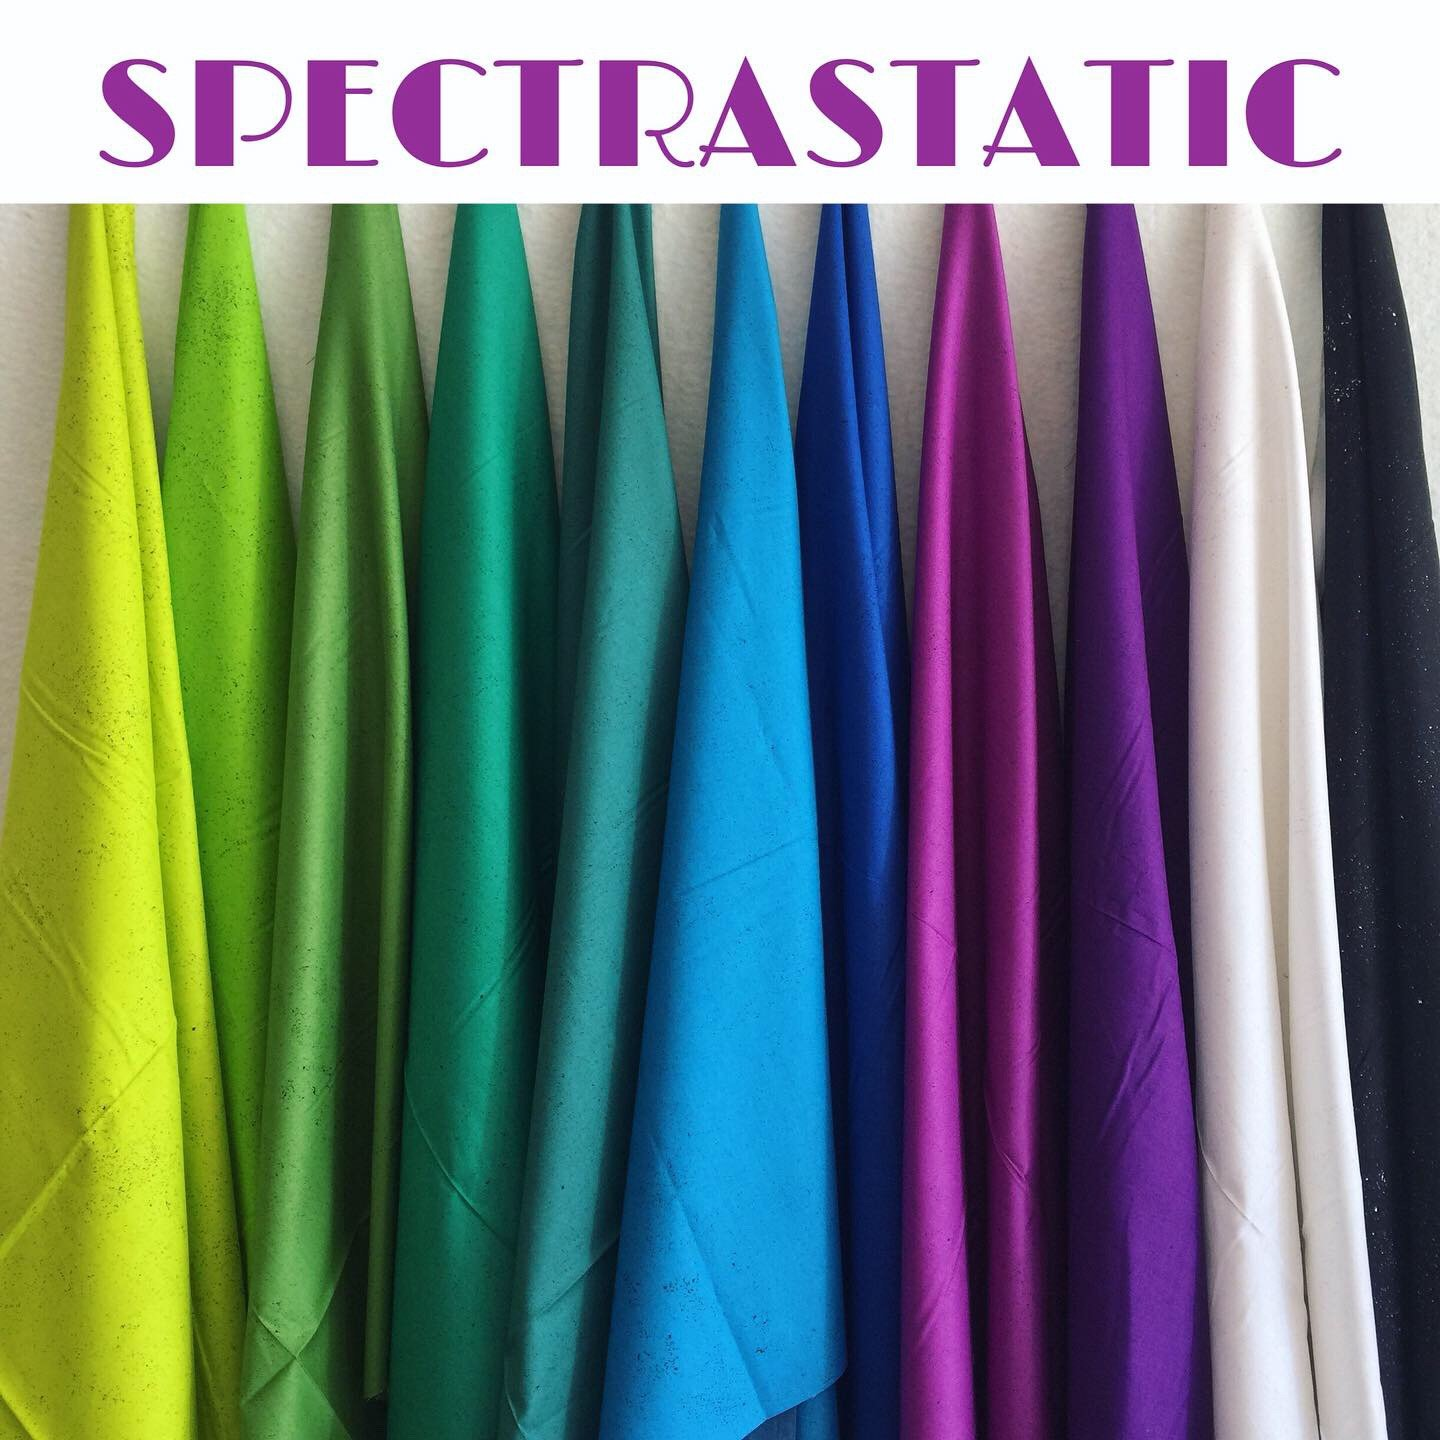 Giucy Giuce - Spectrastatic - FQ Bundle (11 pieces)